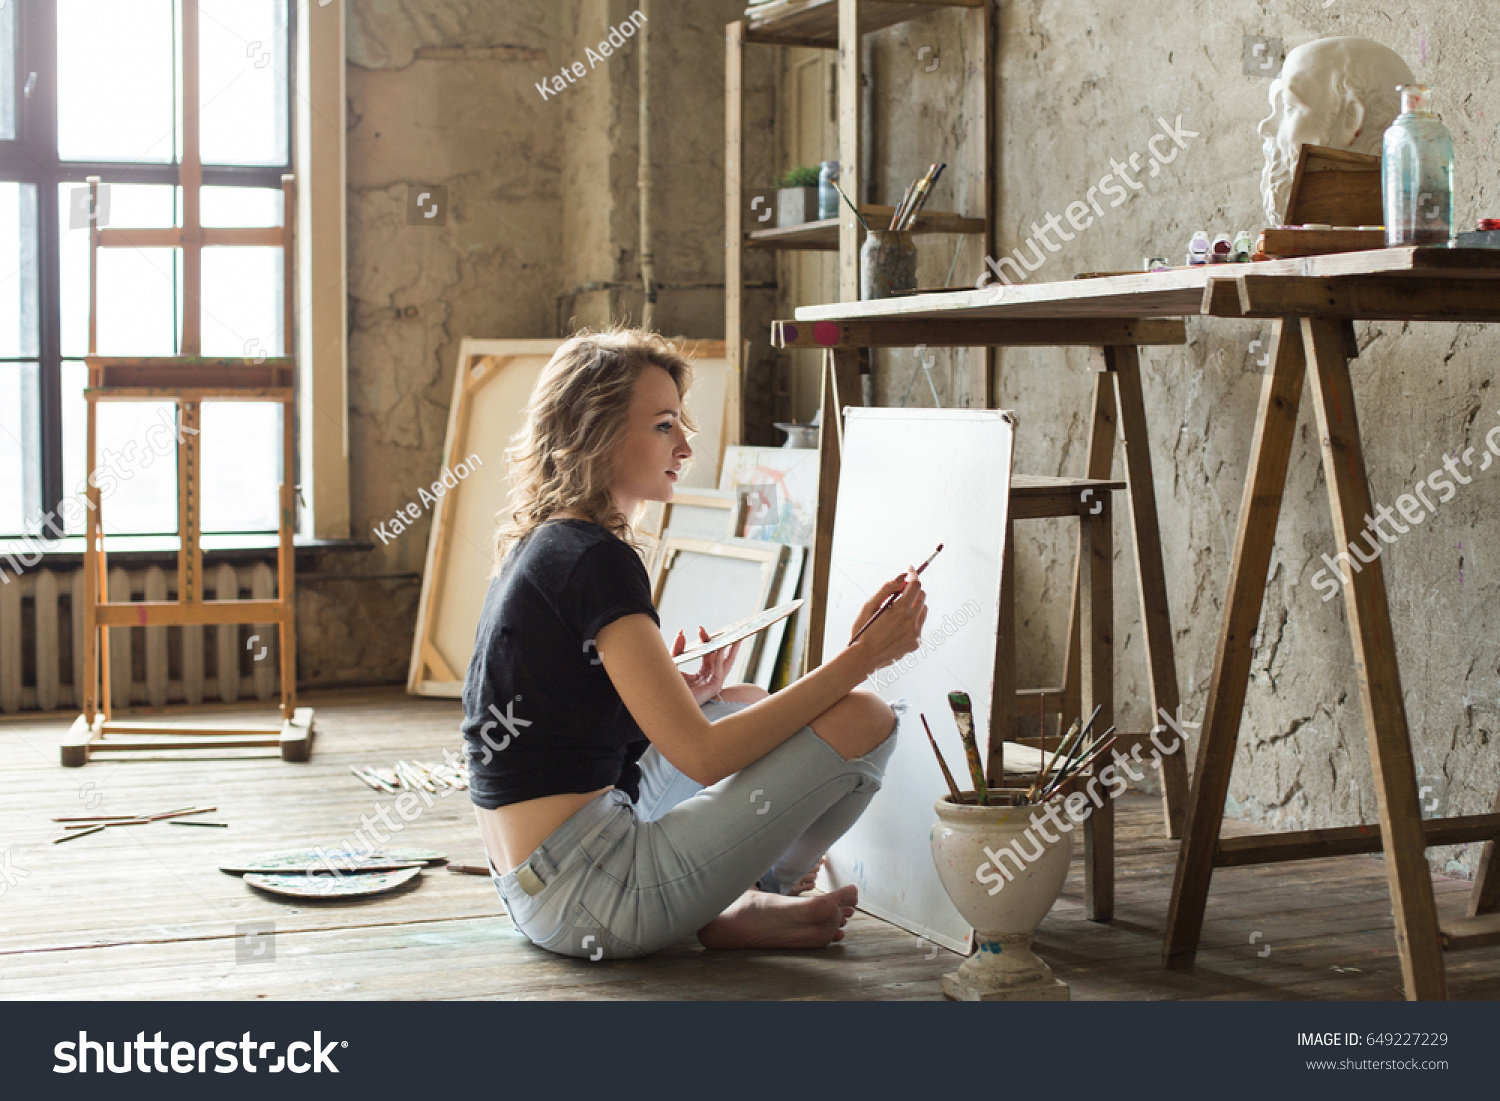 Woman painter sitting on the floor in front of the canvas and drawing. Artist studio interior. Drawing supplies, oil paints, artist brushes, canvas, frame. Workshop or art class. Creative concept #649227229